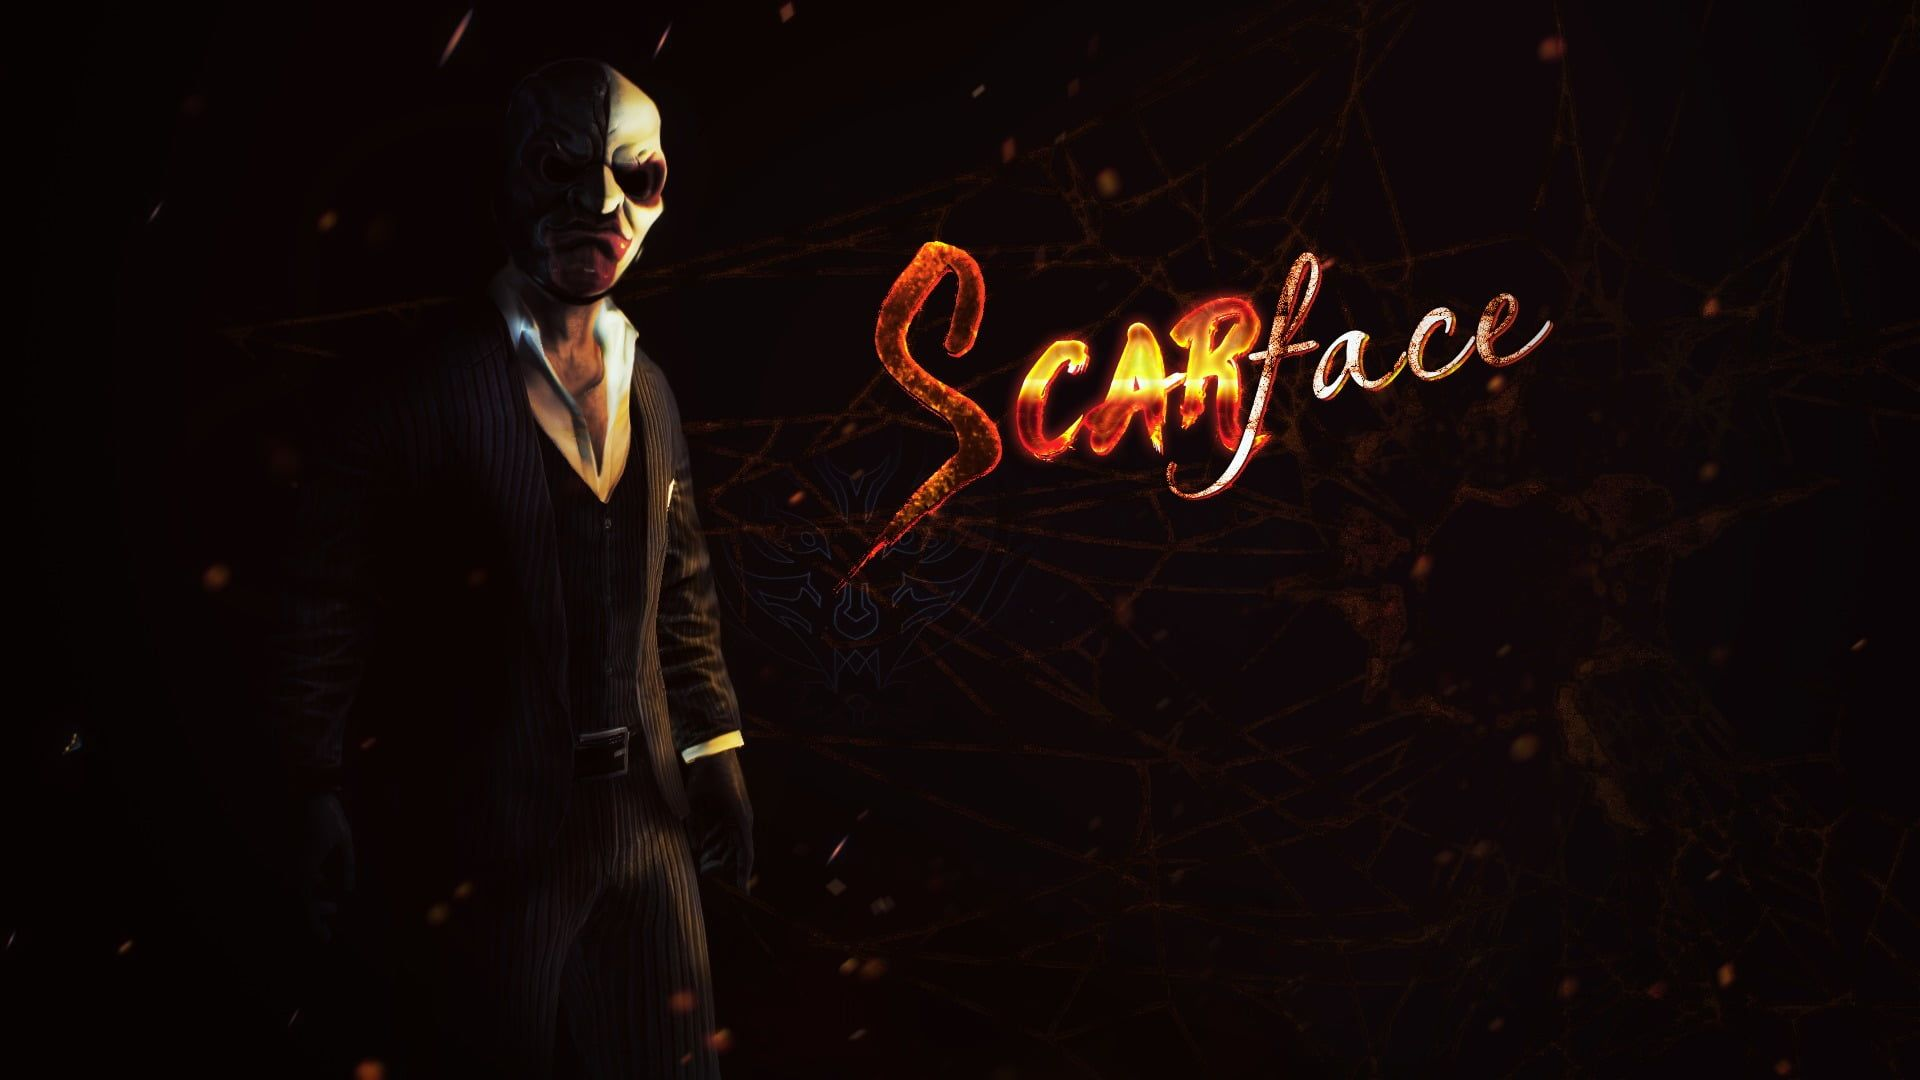 Payday 2 Video Games Scarface 1080p Wallpaper Hdwallpaper Desktop Macbook Desktop Hd Wallpaper Video Games